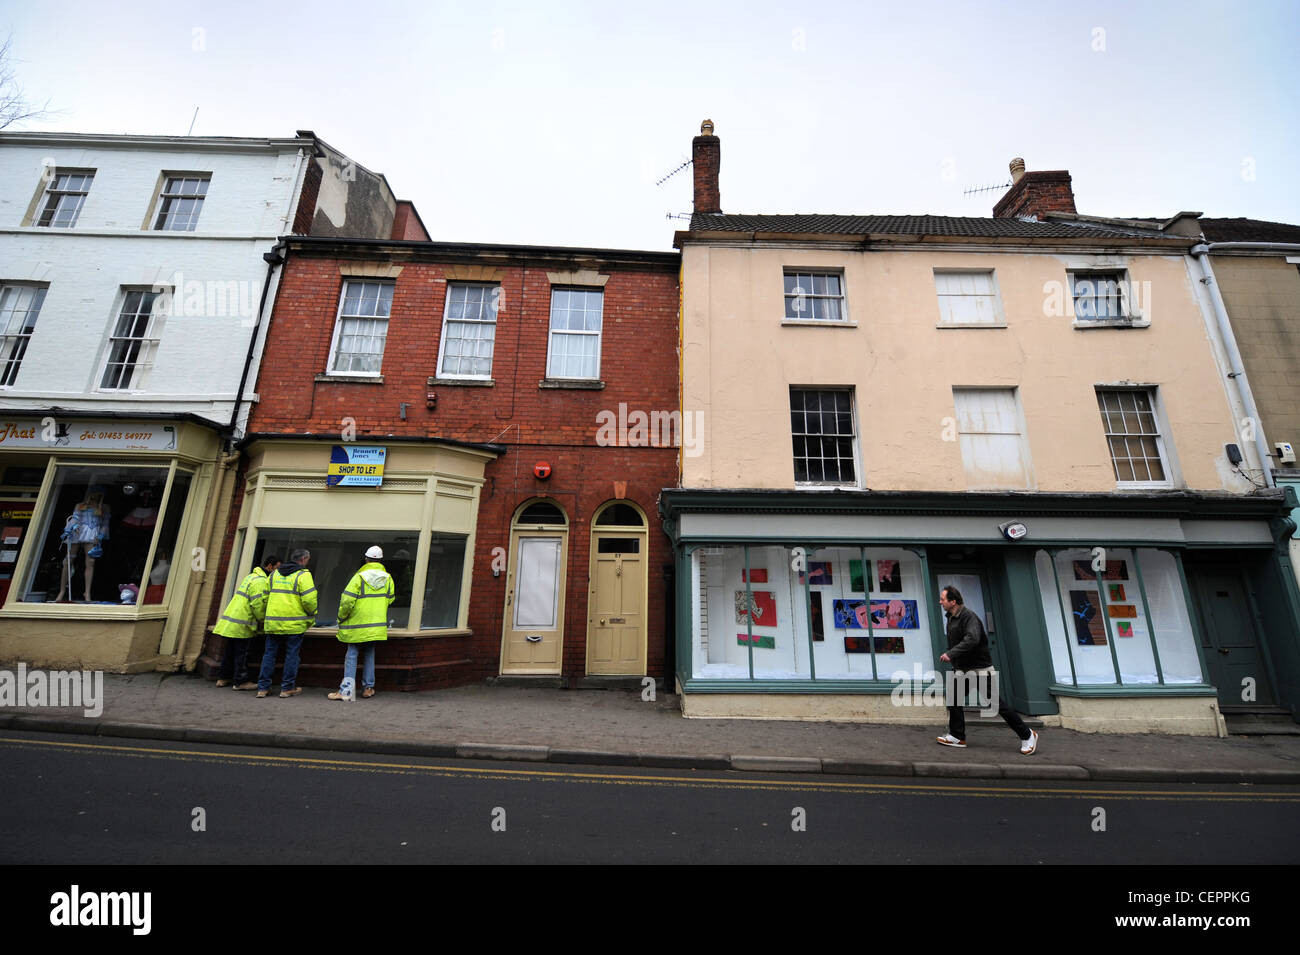 Construction workers look into an unoccupied shop in temporary use as an art gallery in Dursley, Gloucestershire, - Stock Image